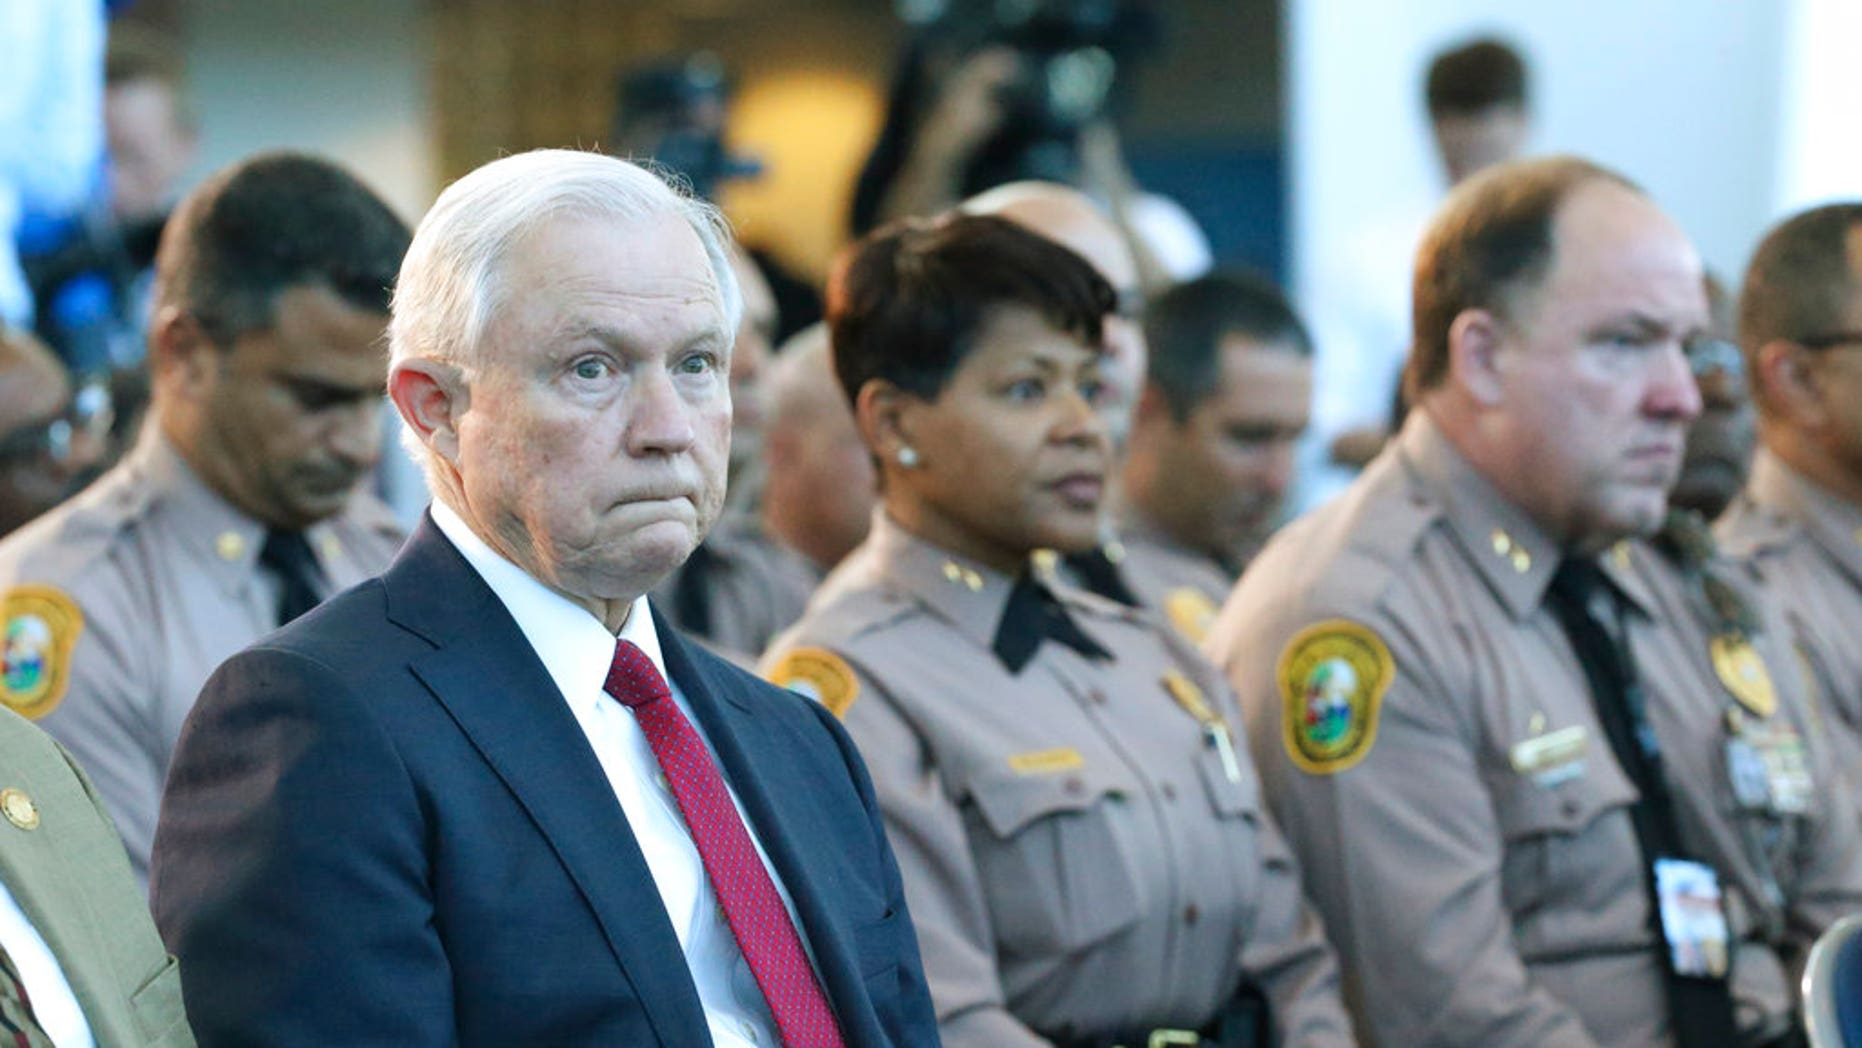 A federal judge in Chicago has ruled Attorney General Jeff Sessions can't withhold public grant money from so-called sanctuary cities for refusing to follow federal immigration policies.